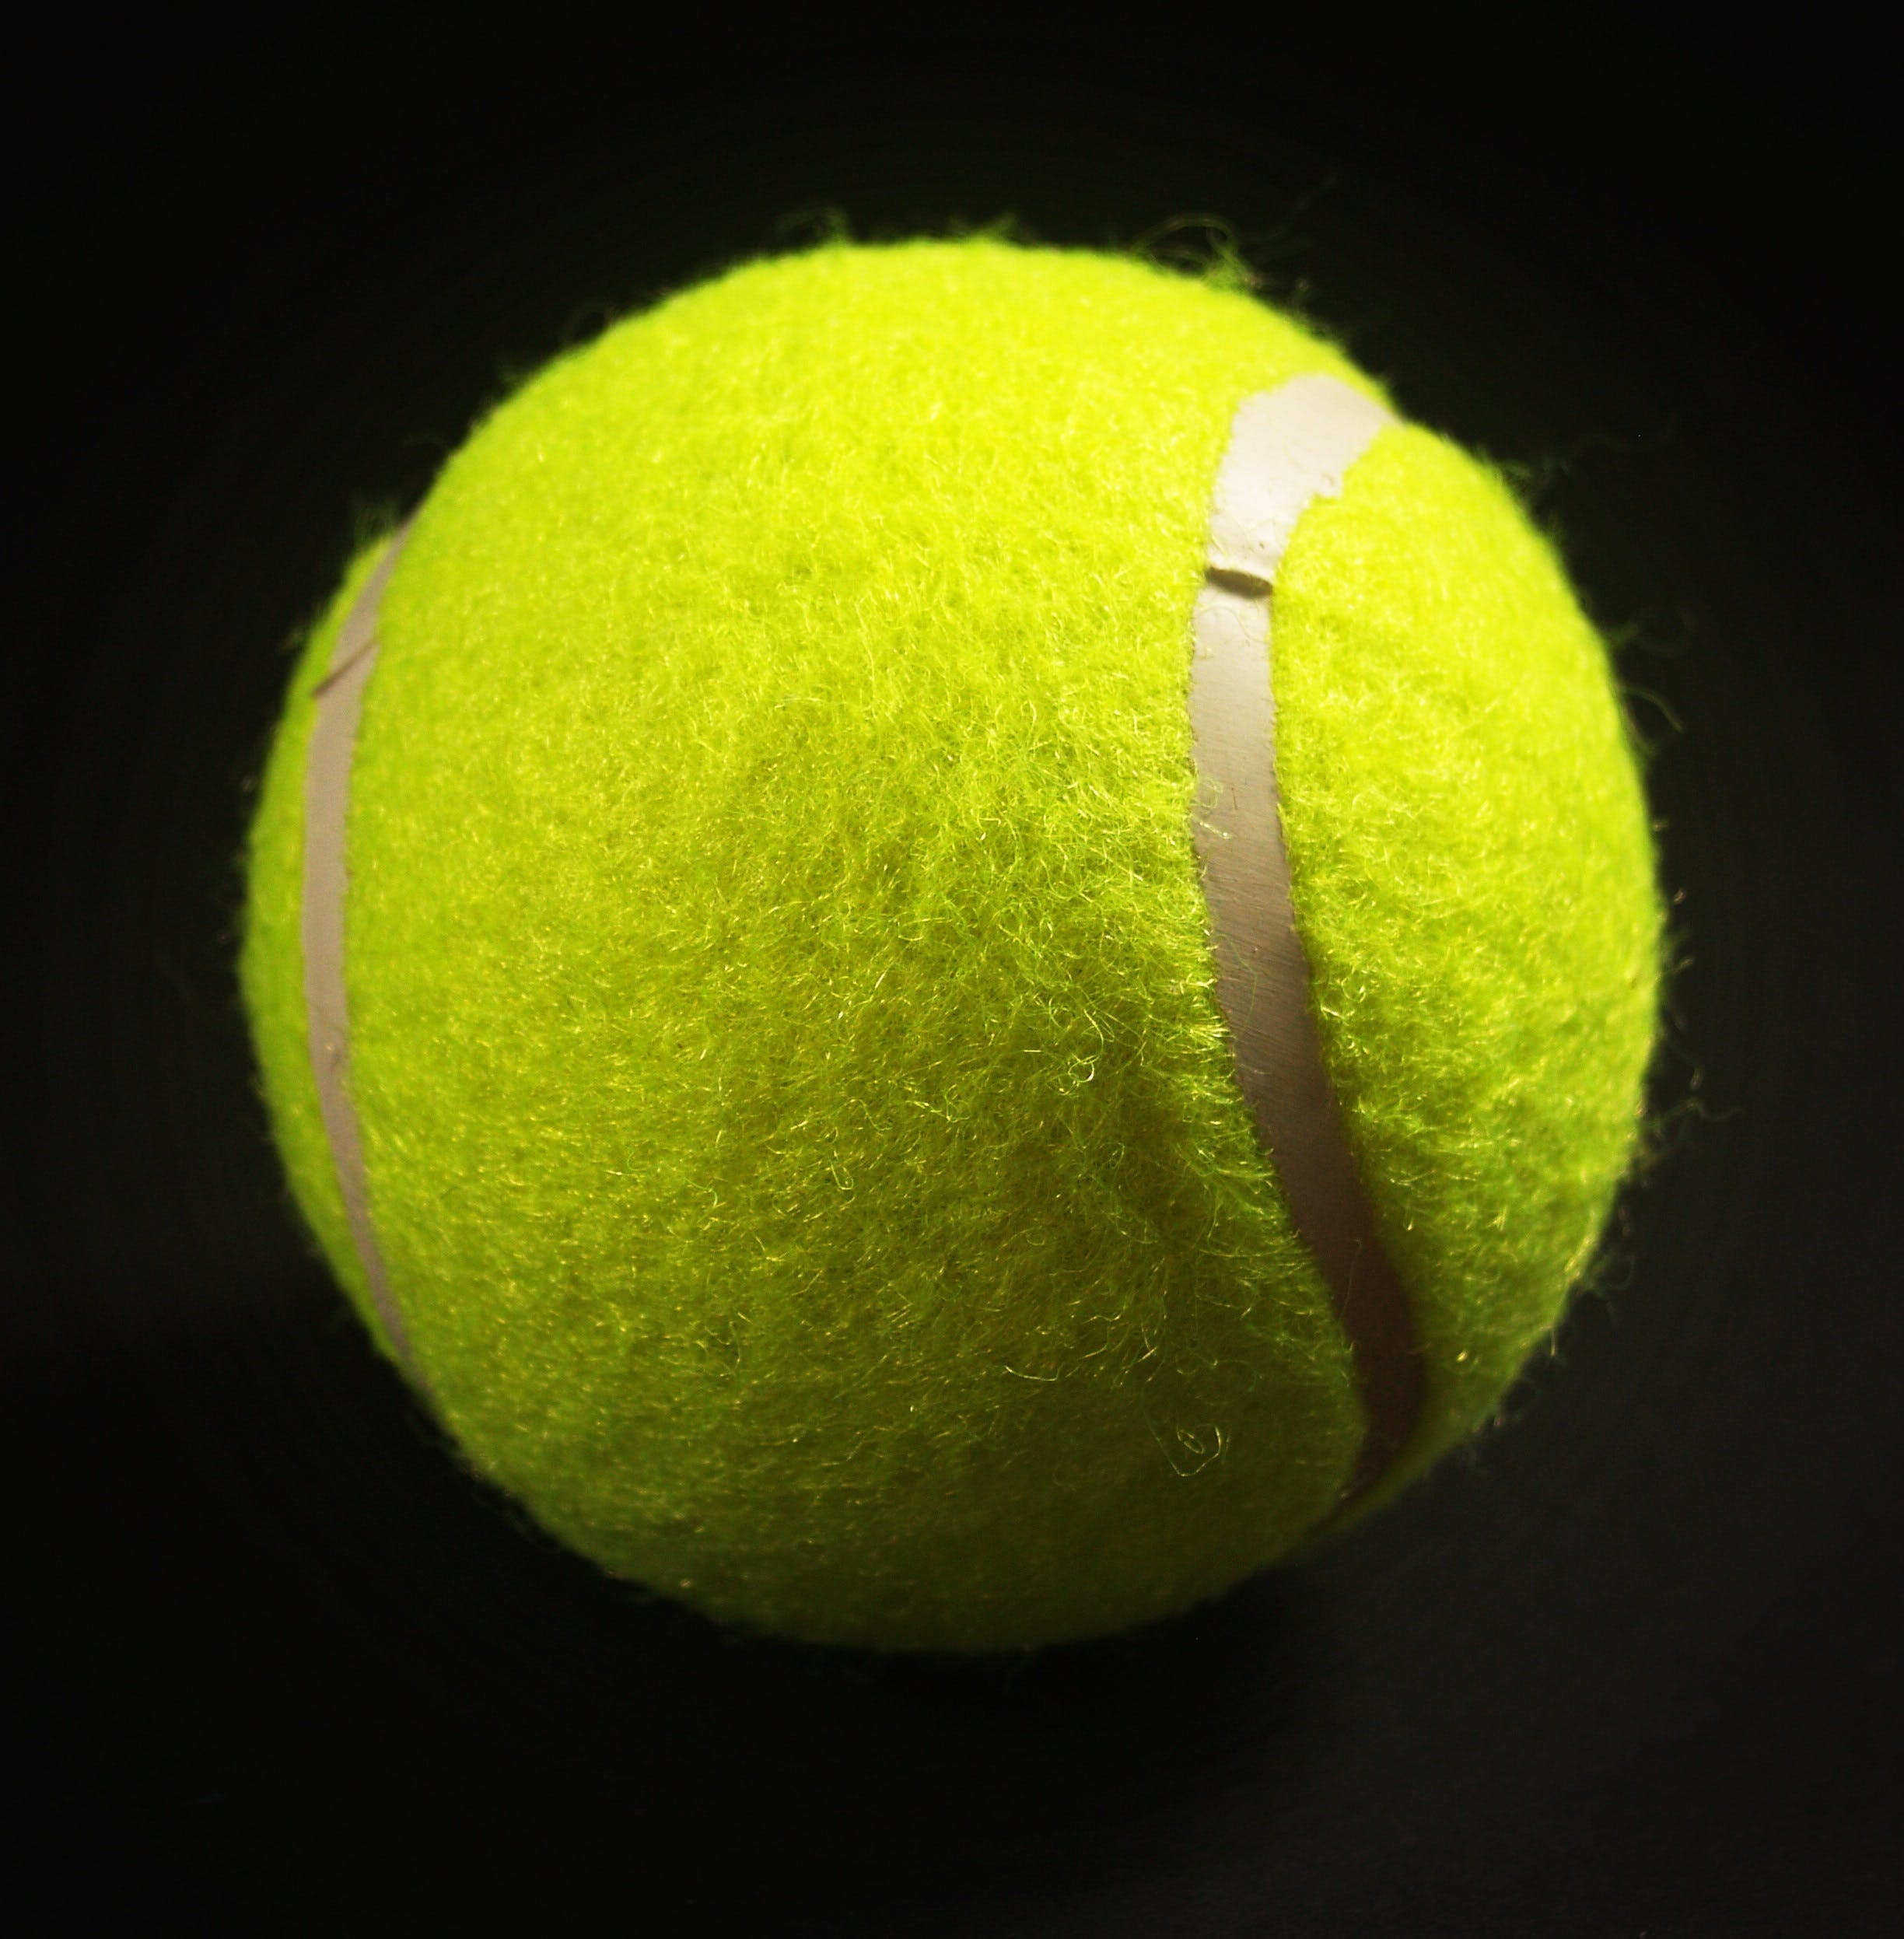 action, ball, black background